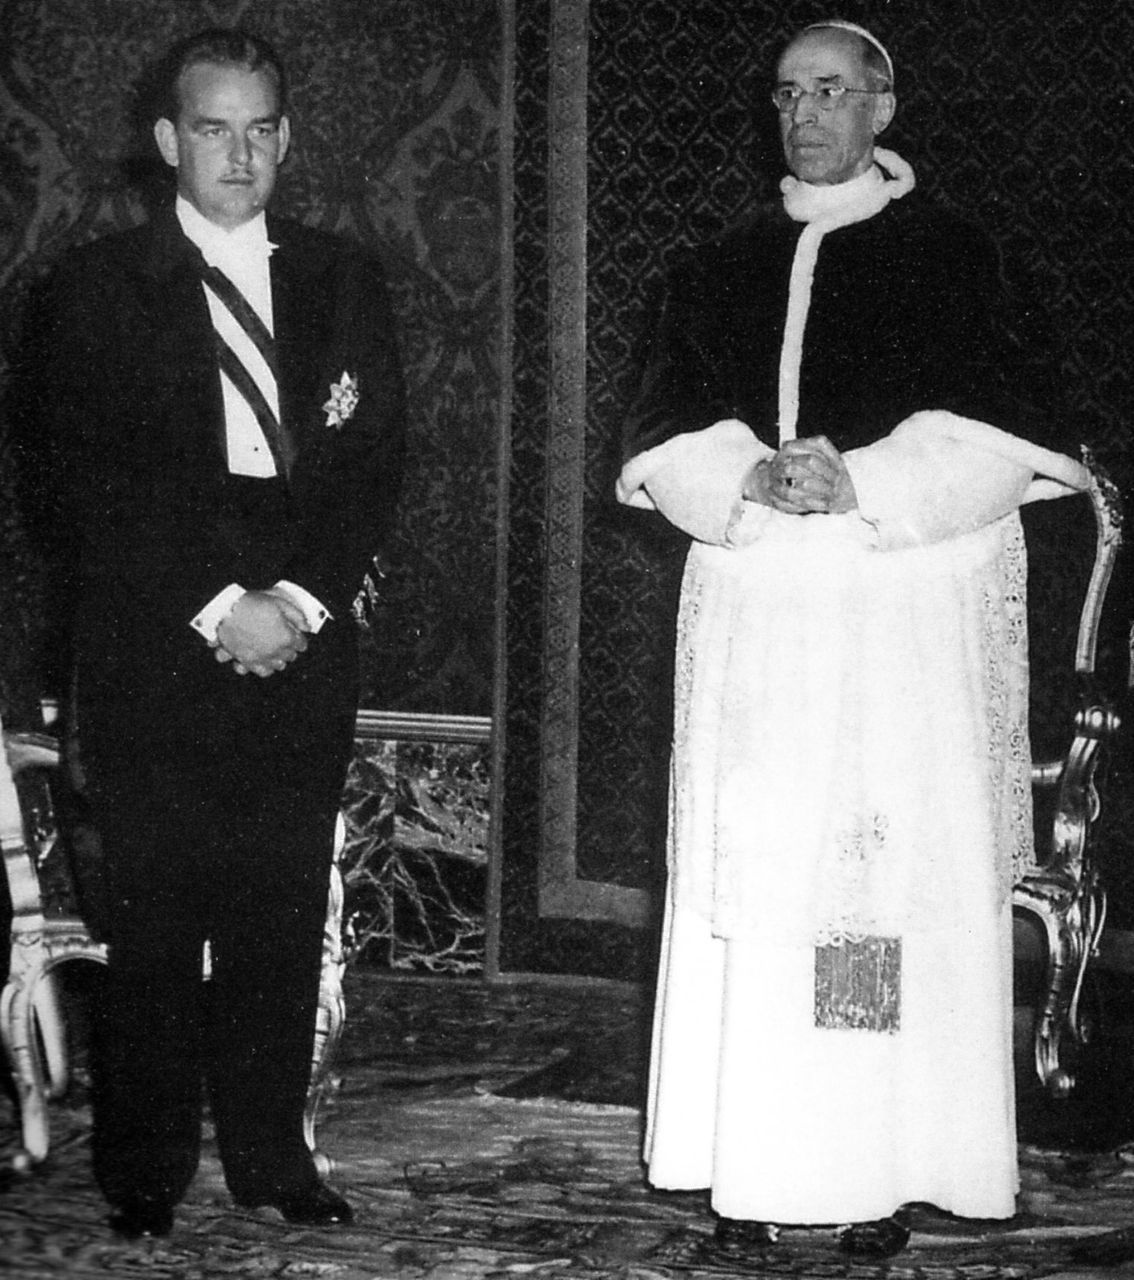 graceandfamily:  Vatican City, March 18, 1950. Prince Rainier III of Monaco with Pope Pius XII.